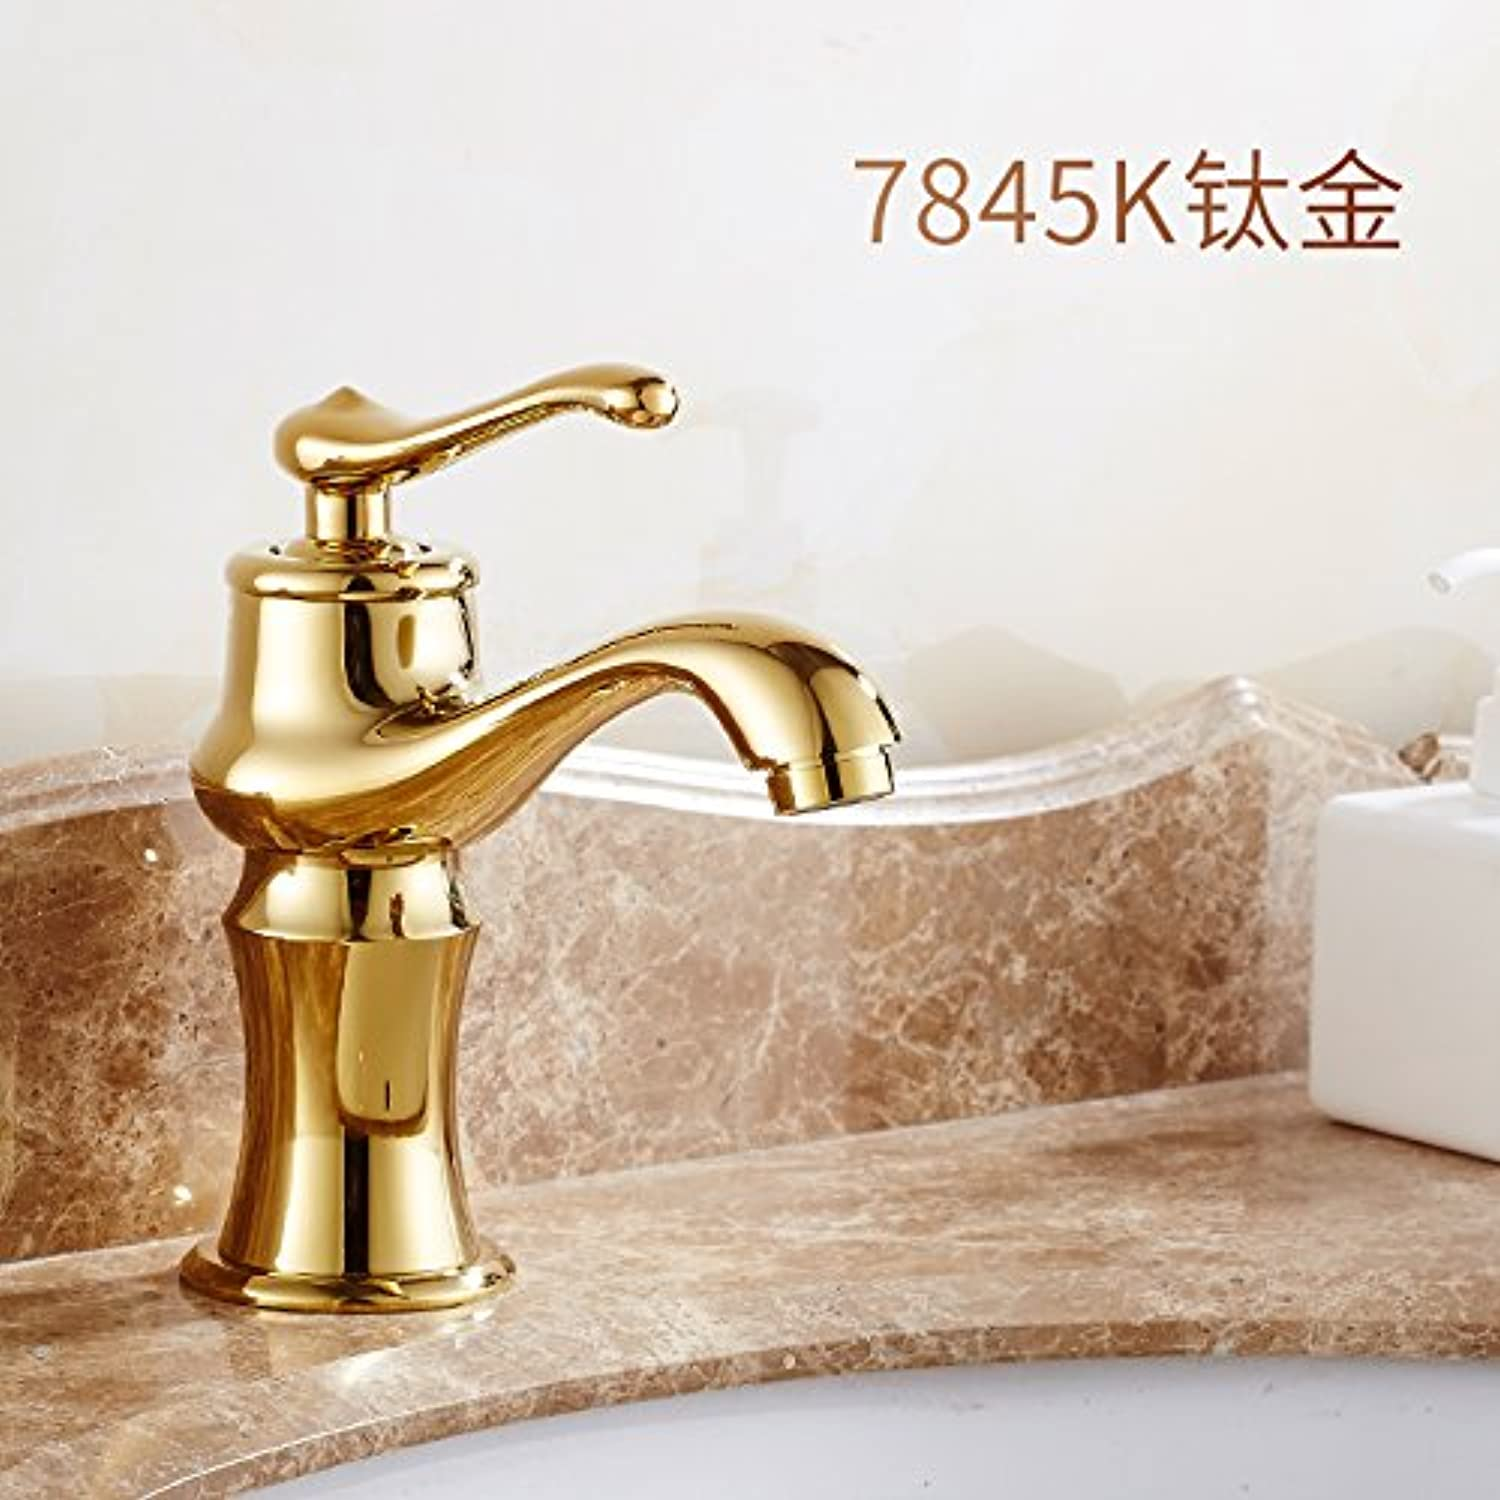 Lpophy Bathroom Sink Mixer Taps Faucet Bath Waterfall Cold and Hot Water Tap for Washroom Bathroom and Kitchen Hot and Cold Copper Antique gold Single Hole Titanium B